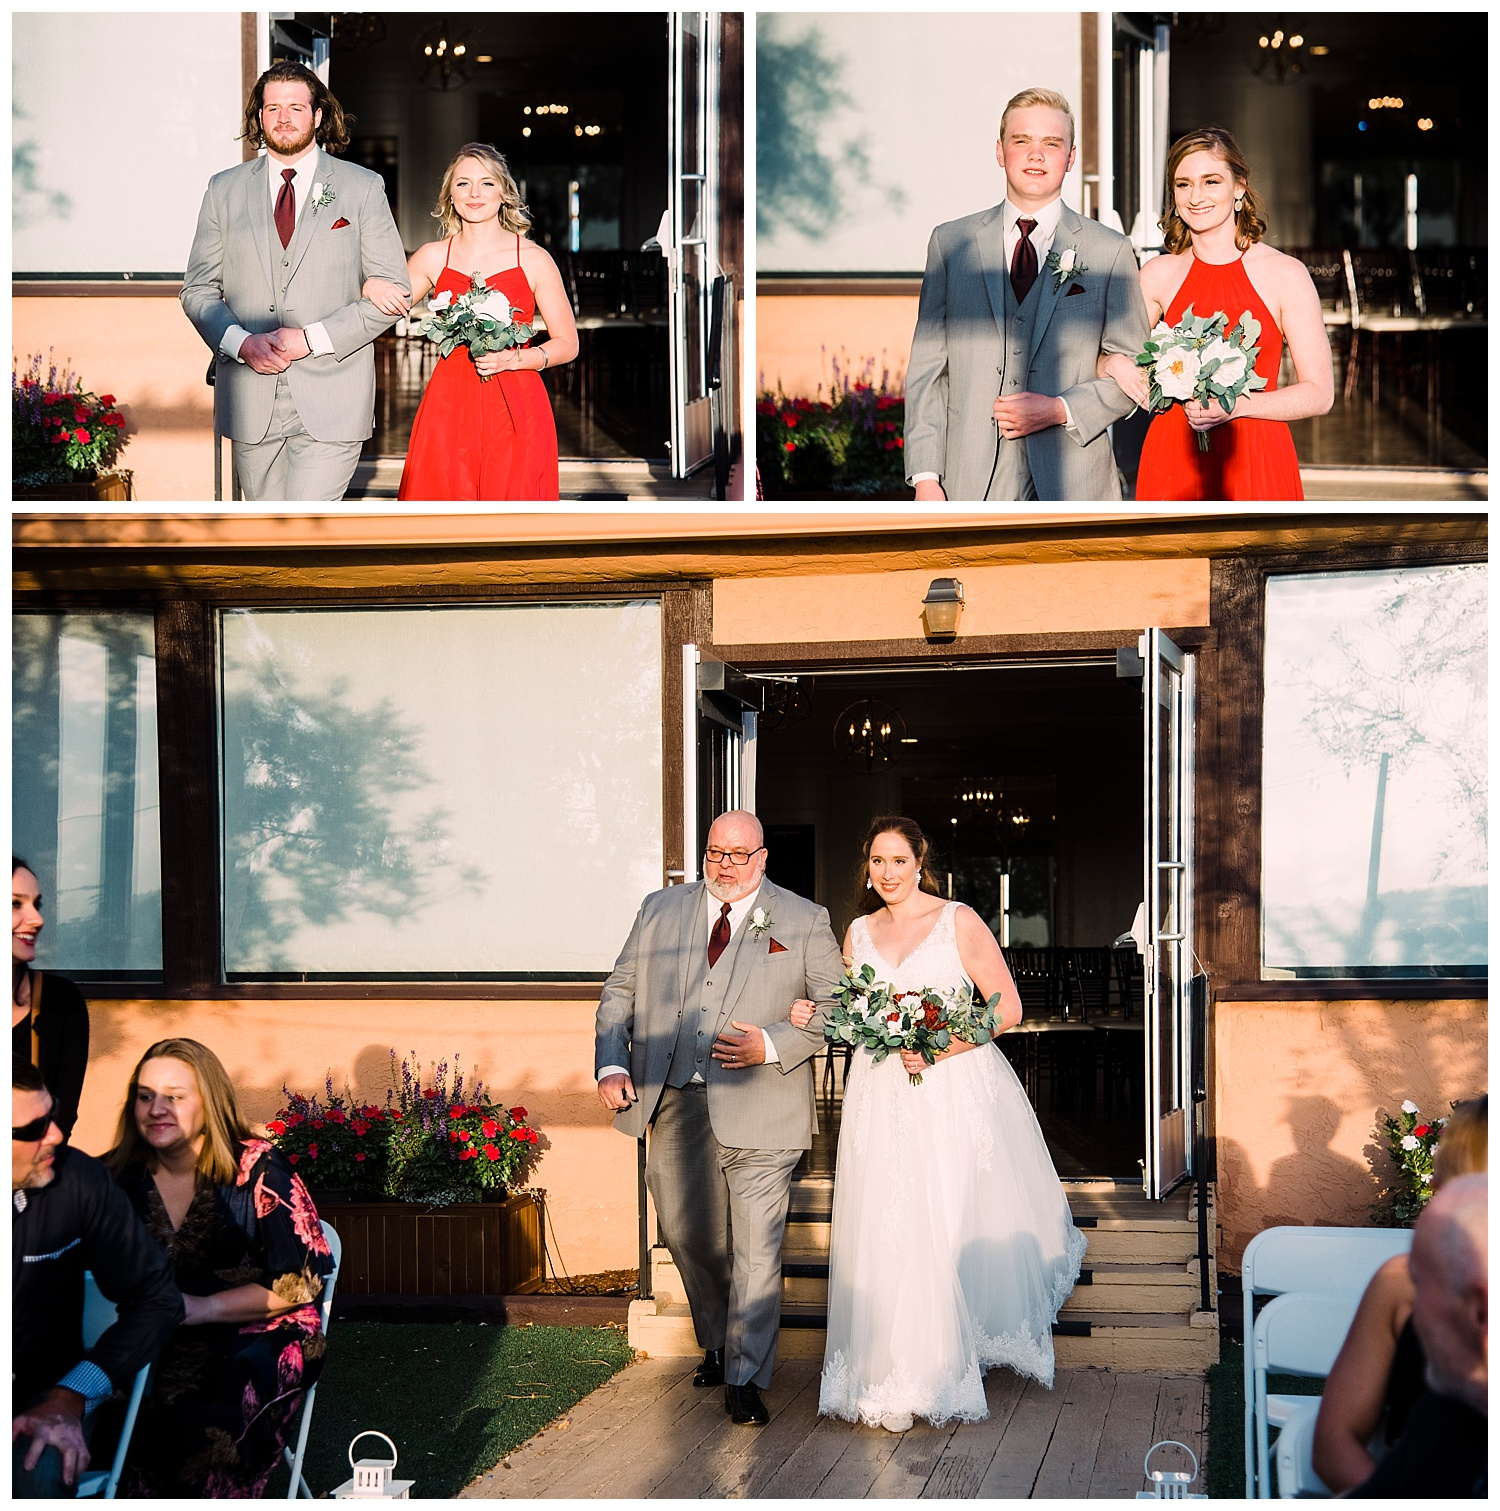 Danish_Wedding_Traditions_Denver_Colorado_Photographer_Wedgewood_Brittany_Hill_Apollo_Fields_014.jpg